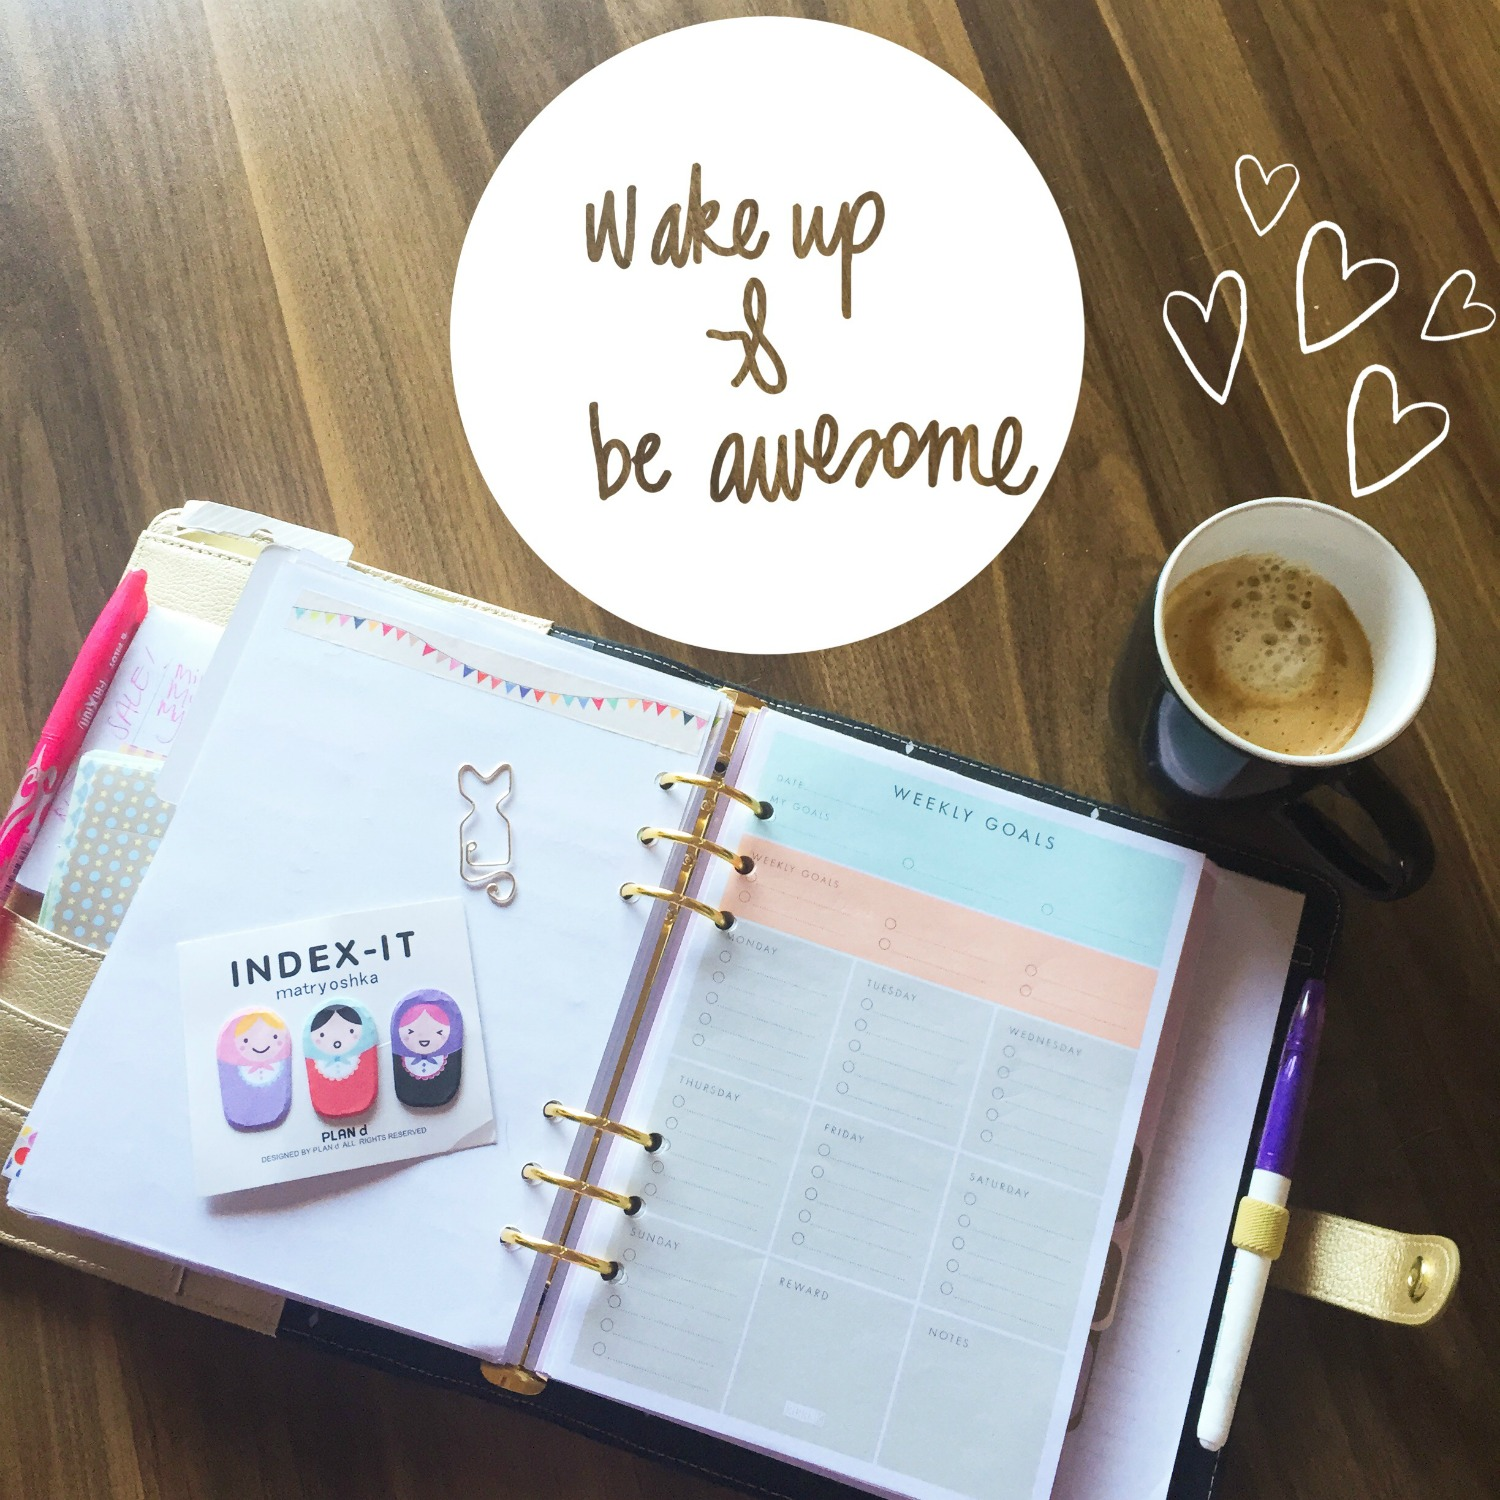 Online Bullet Journal - not digital